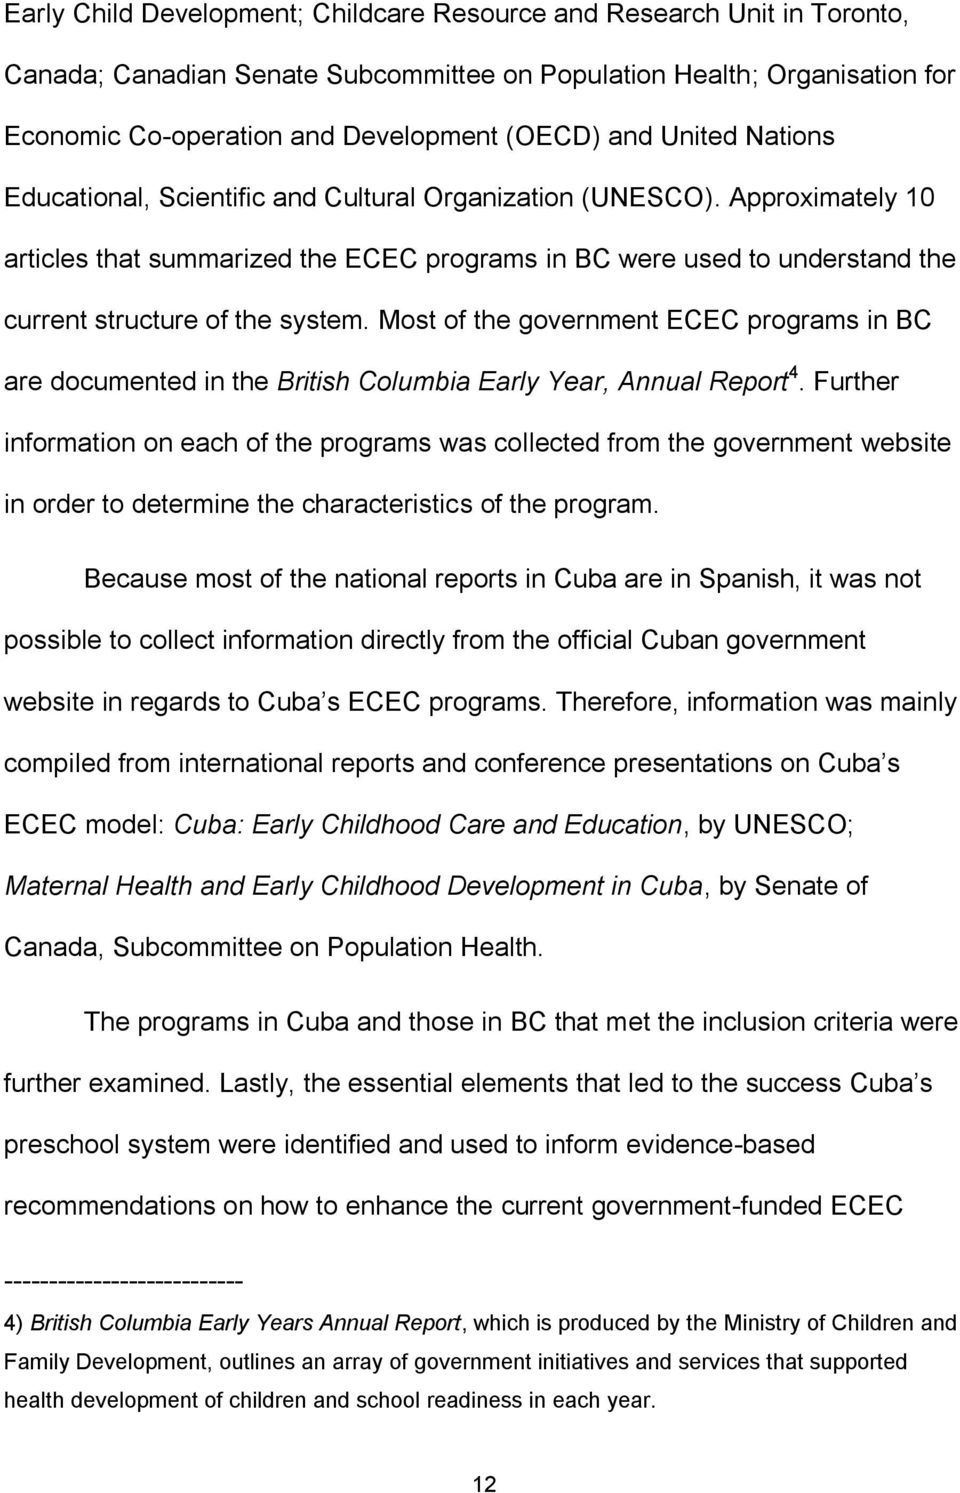 Approximately 10 articles that summarized the ECEC programs in BC were used to understand the current structure of the system.